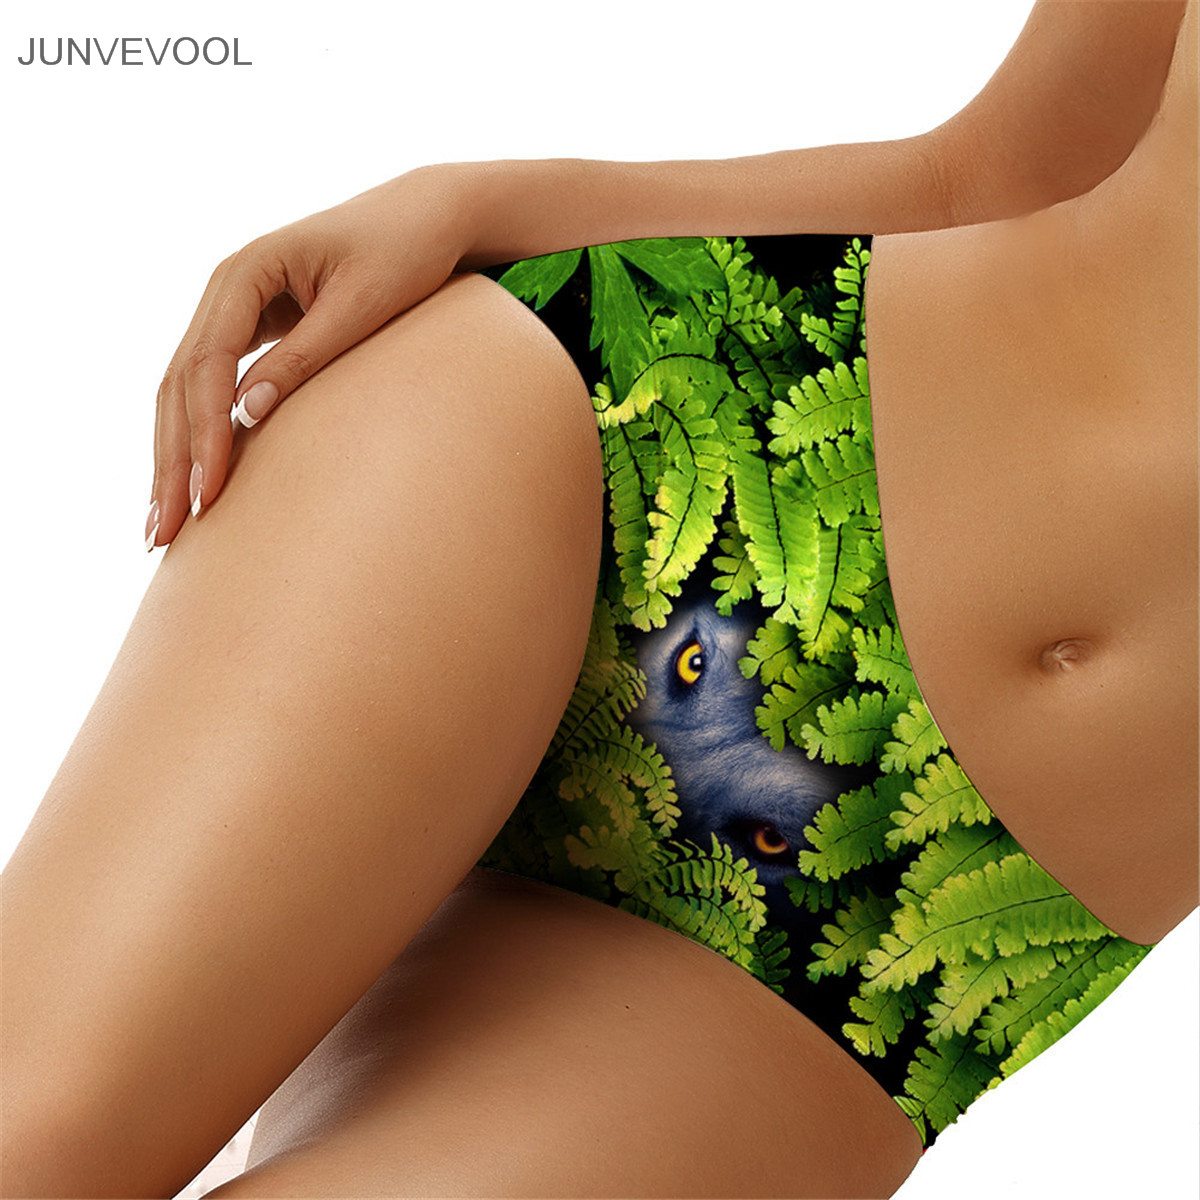 Crotchless Ultra-thin Comfort Underwear Eyes on The Leaves Print Seamless Panties for Women Sexy Briefs Women Sexy Underpants ...